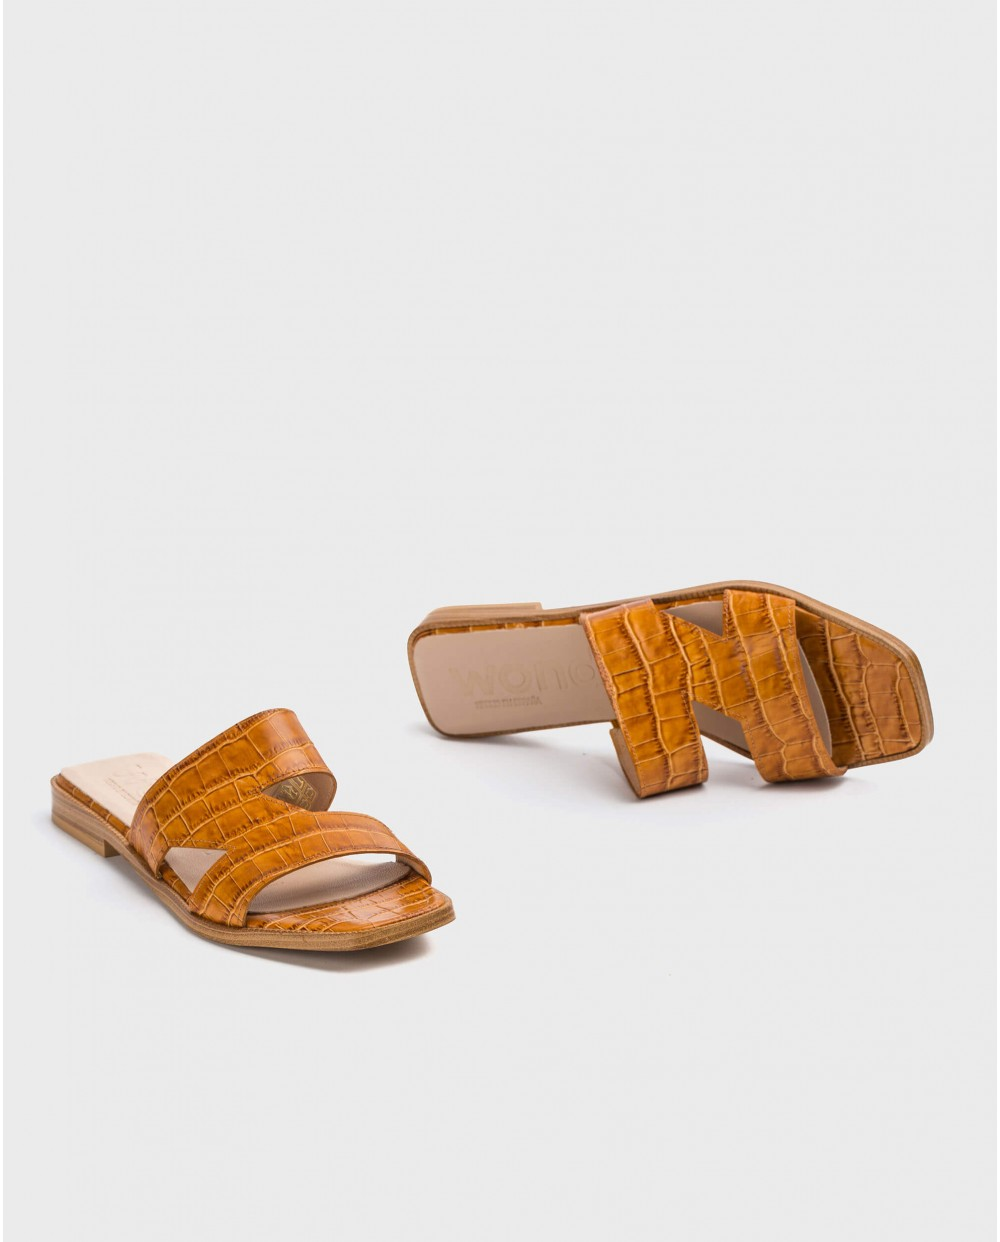 Wonders-Sandals-Leather flat sandal with side cutouts